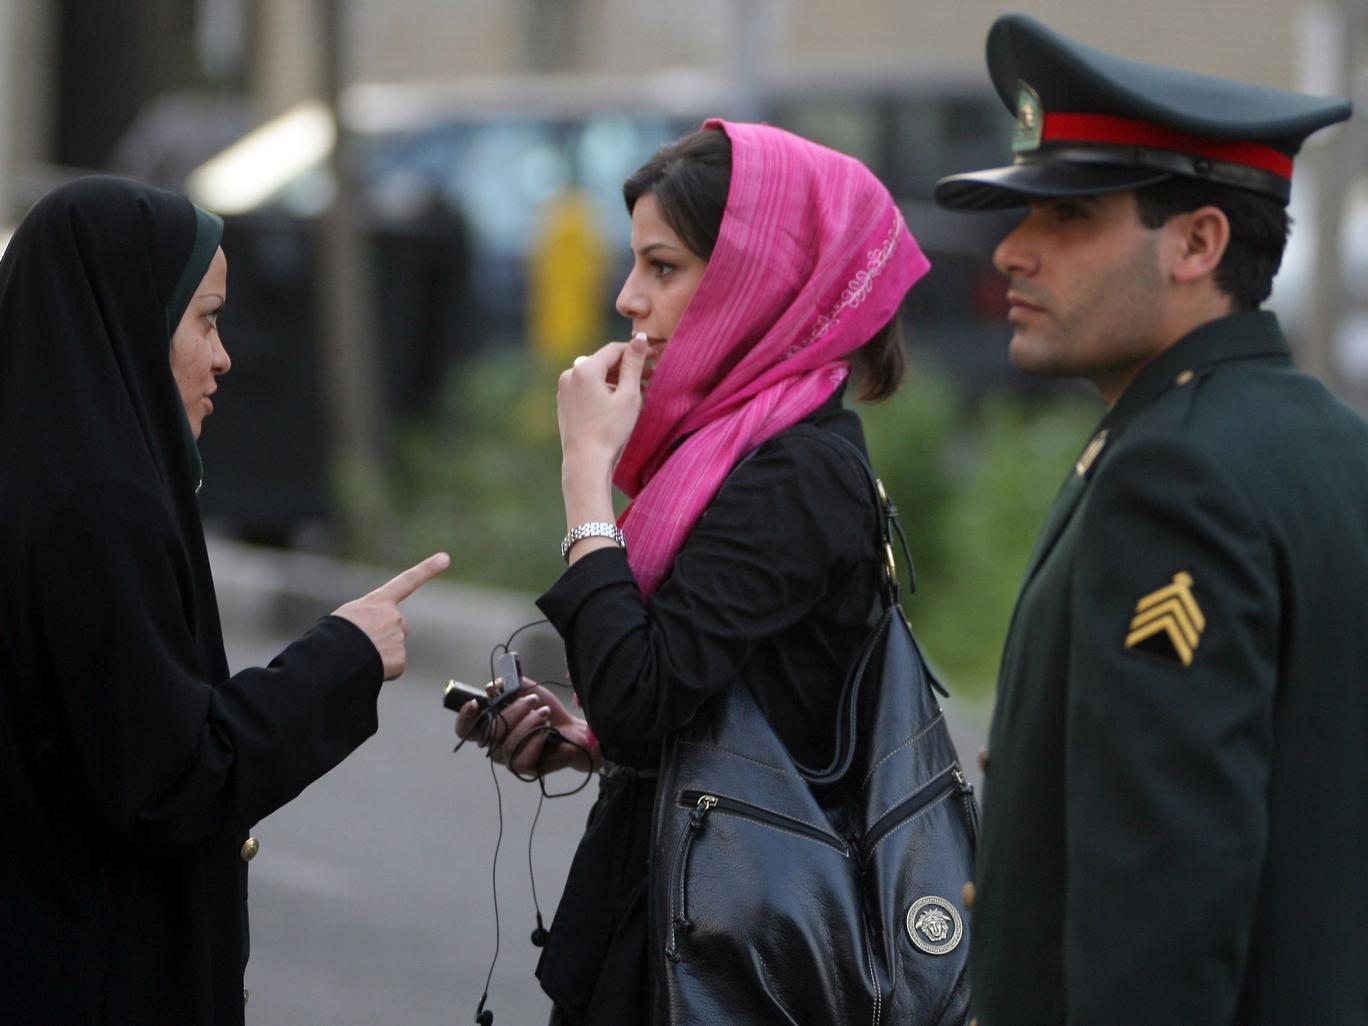 Police in Iran complain of lacking manpower to enforce hijab rules